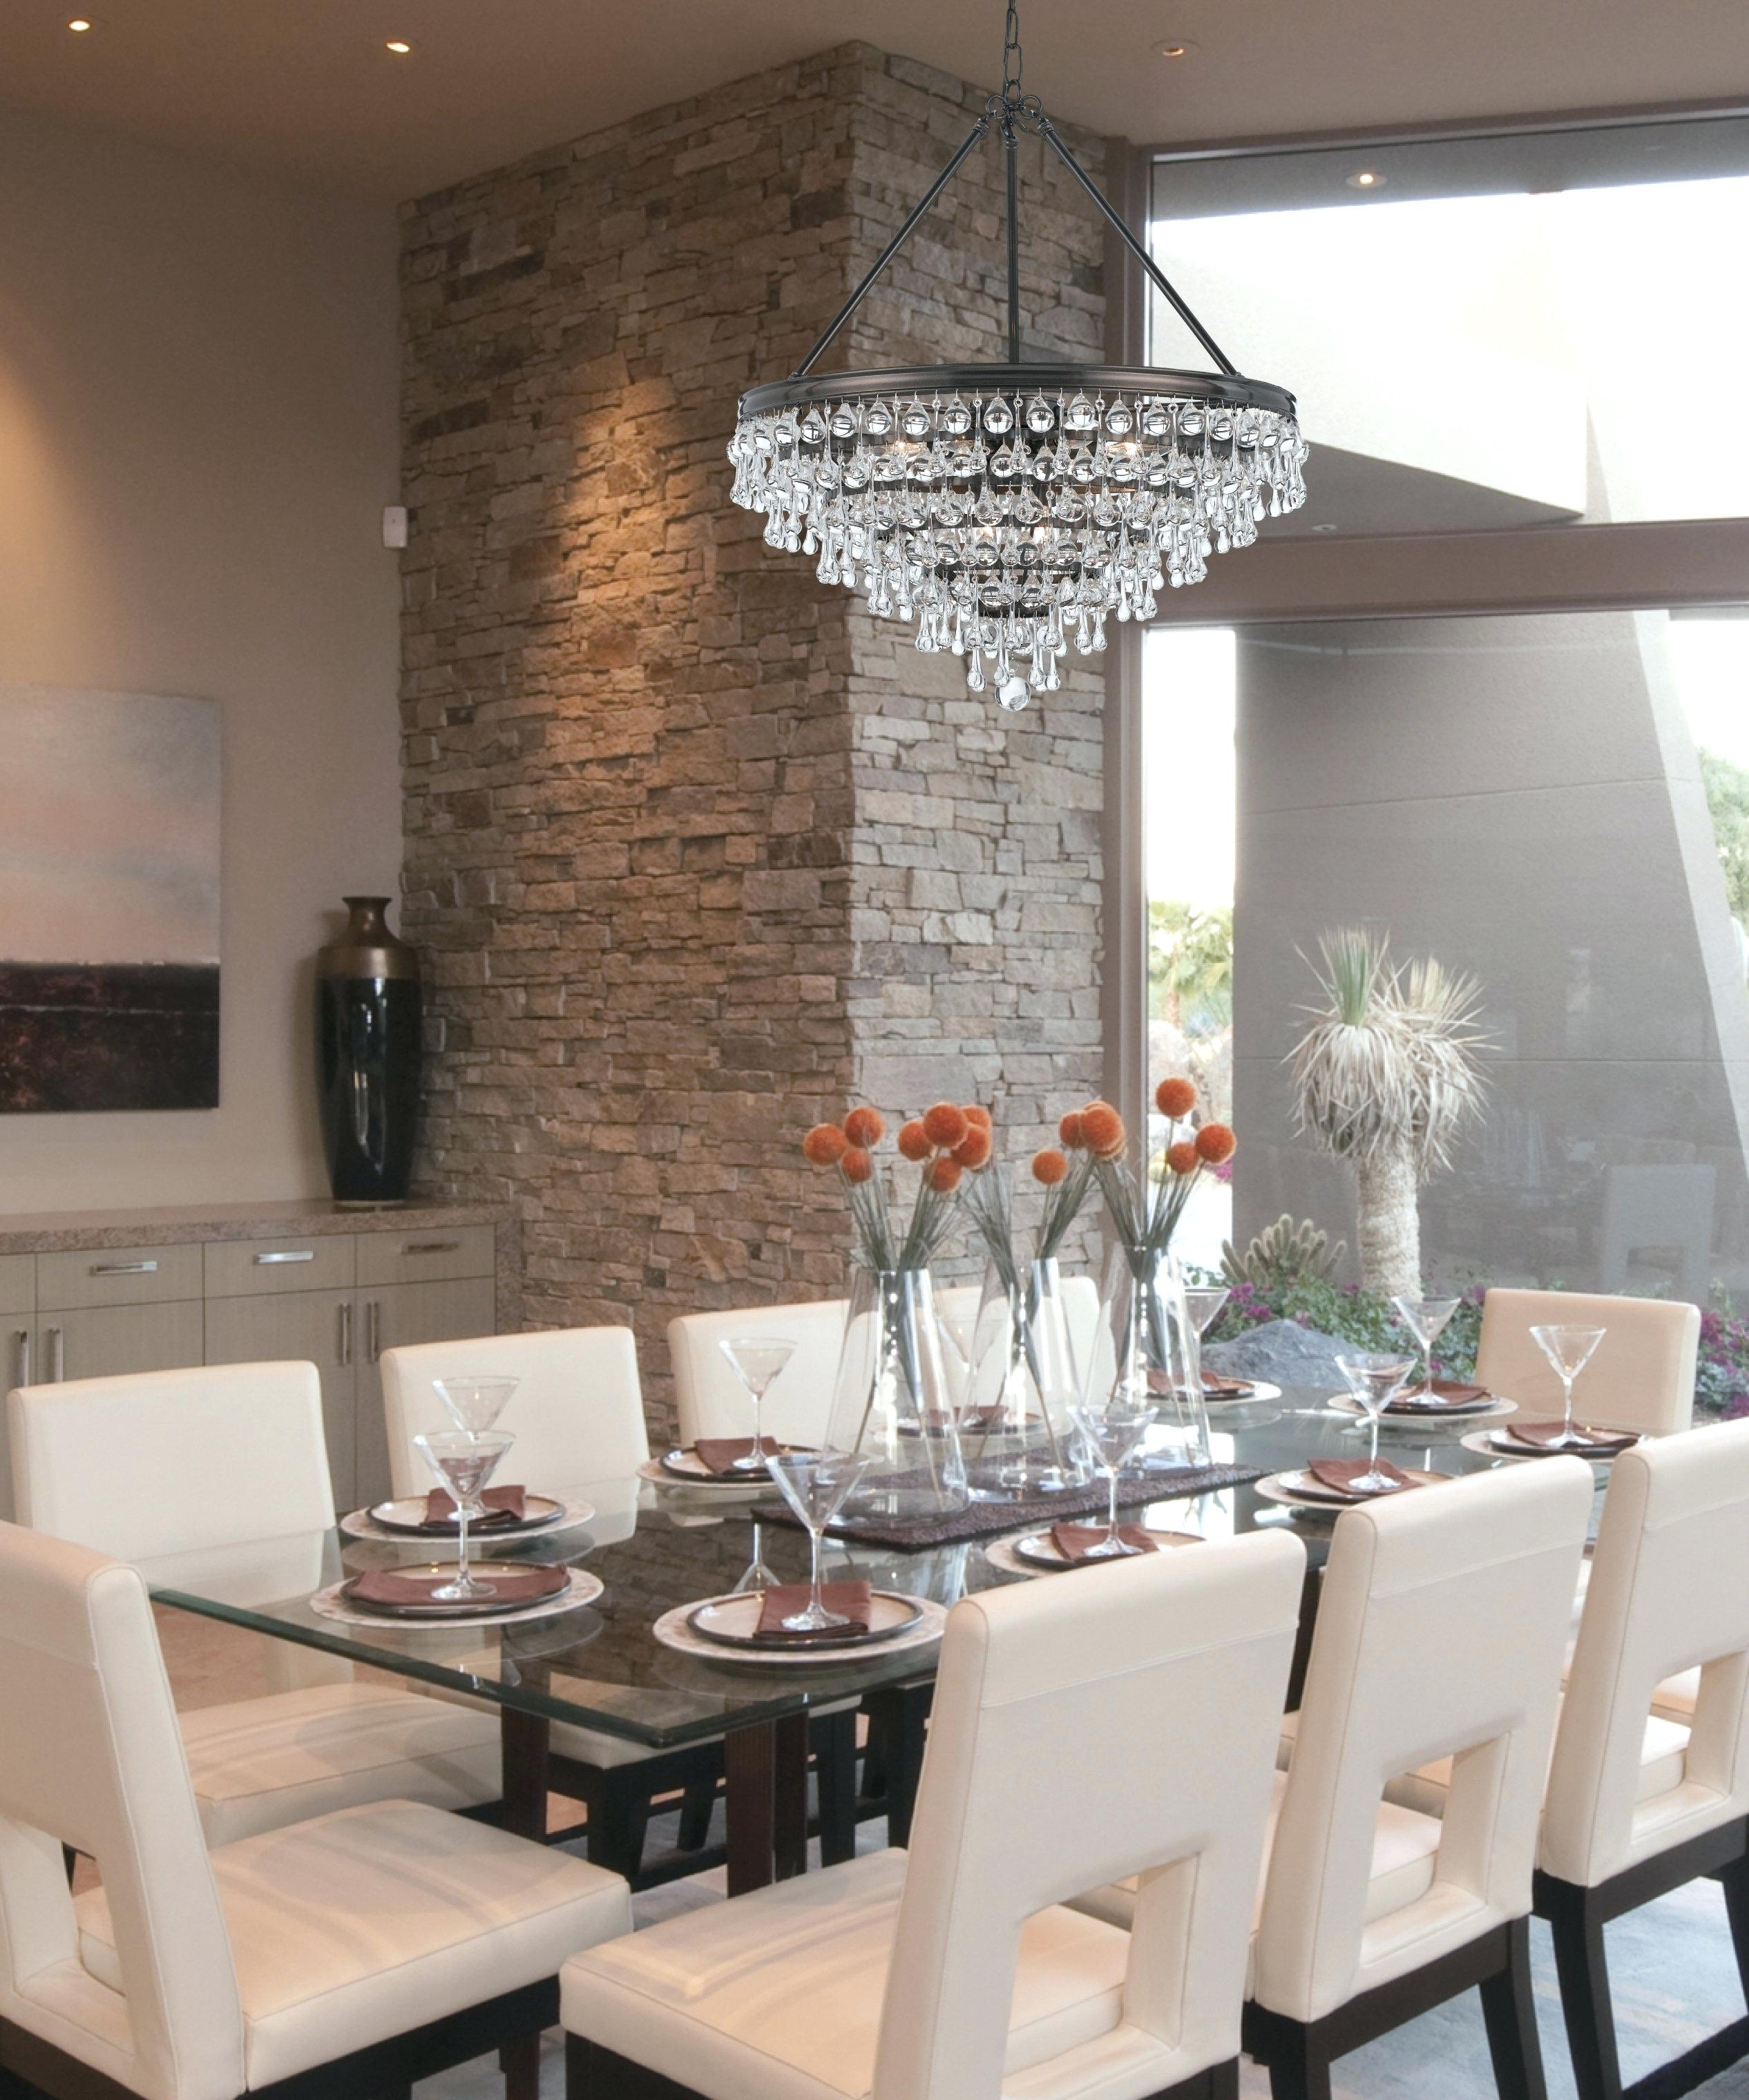 Stag Horn Chandelier Dining Room Light Fixtures Bronze For Florian Crystal Chandeliers (Image 23 of 25)